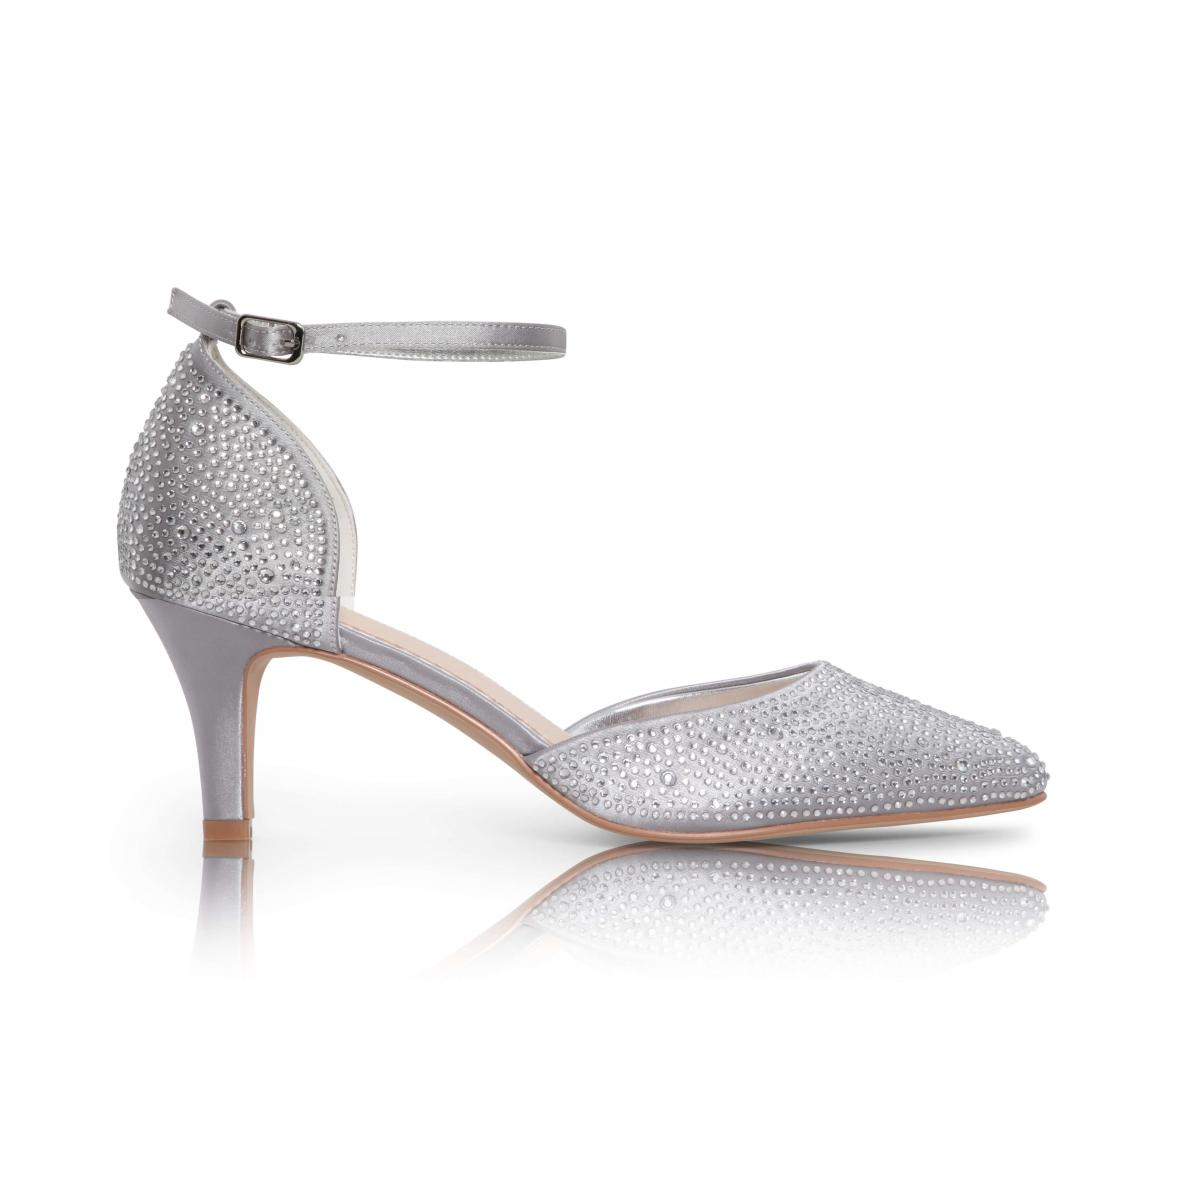 Perfect Bridal Xena Shoes - Silver 1